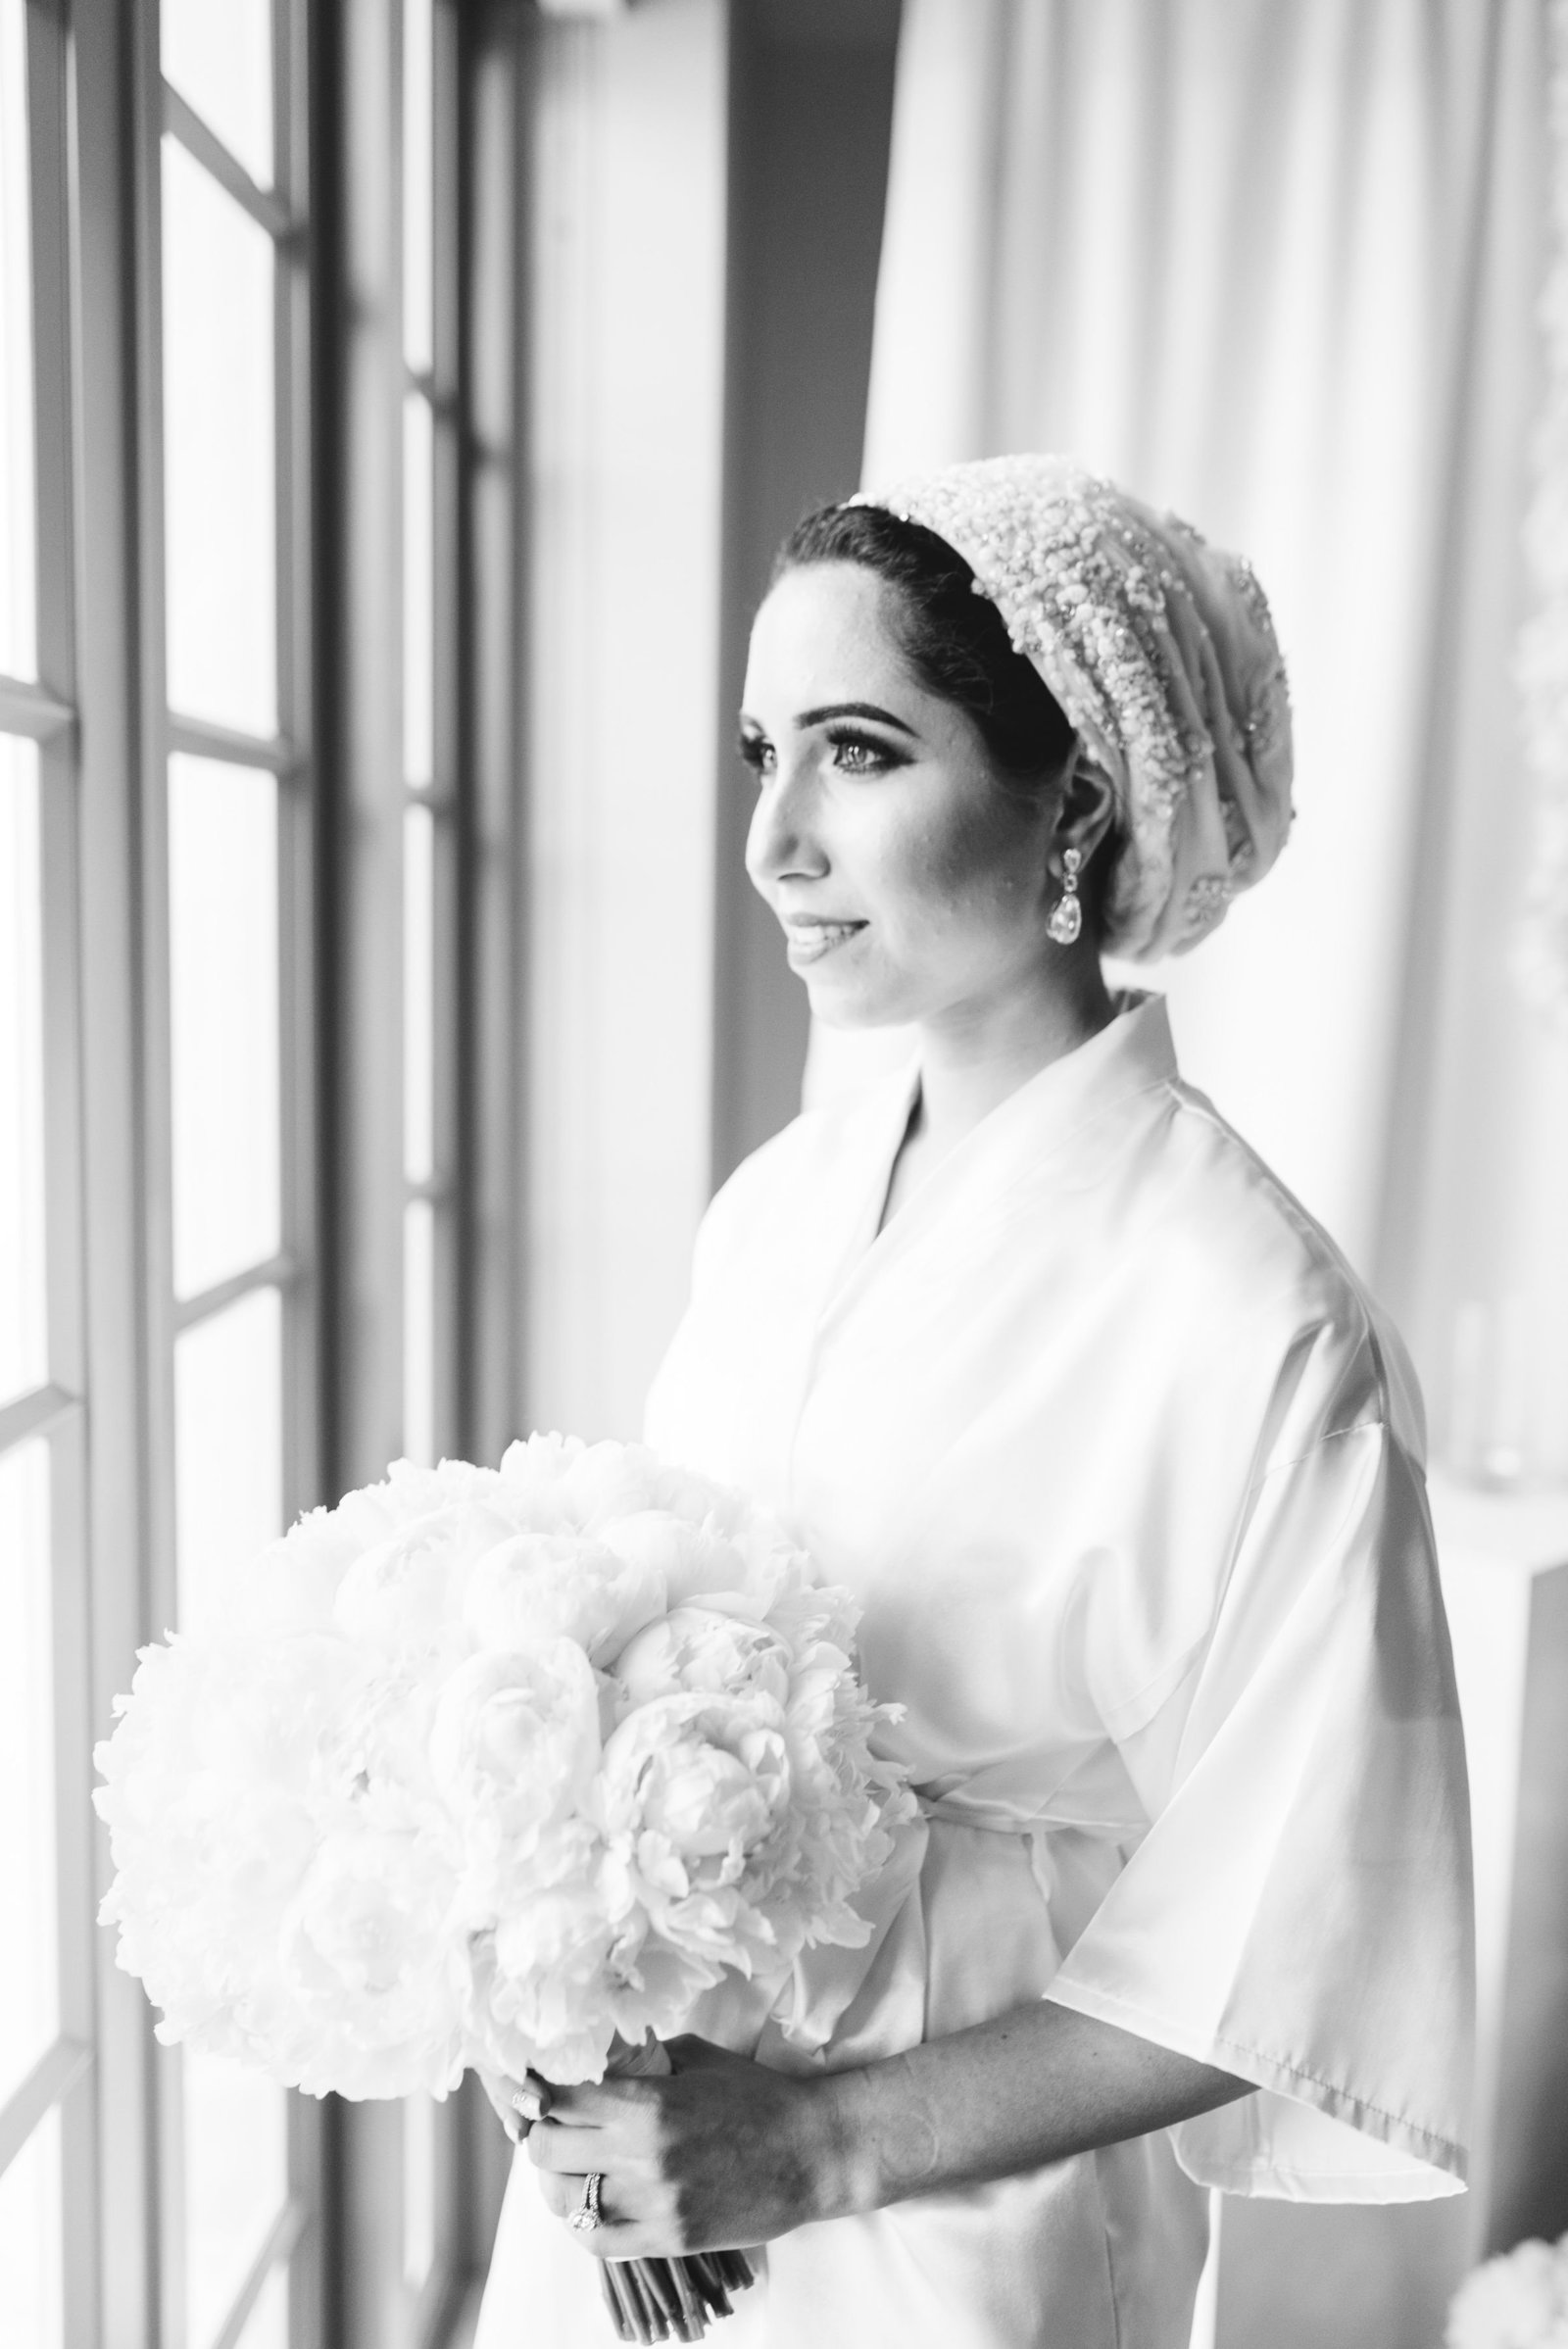 LTP_4996Noor & Ahmad Vinoy Renaissance Wedding in St. Petersburg by Ledia Tashi Photography